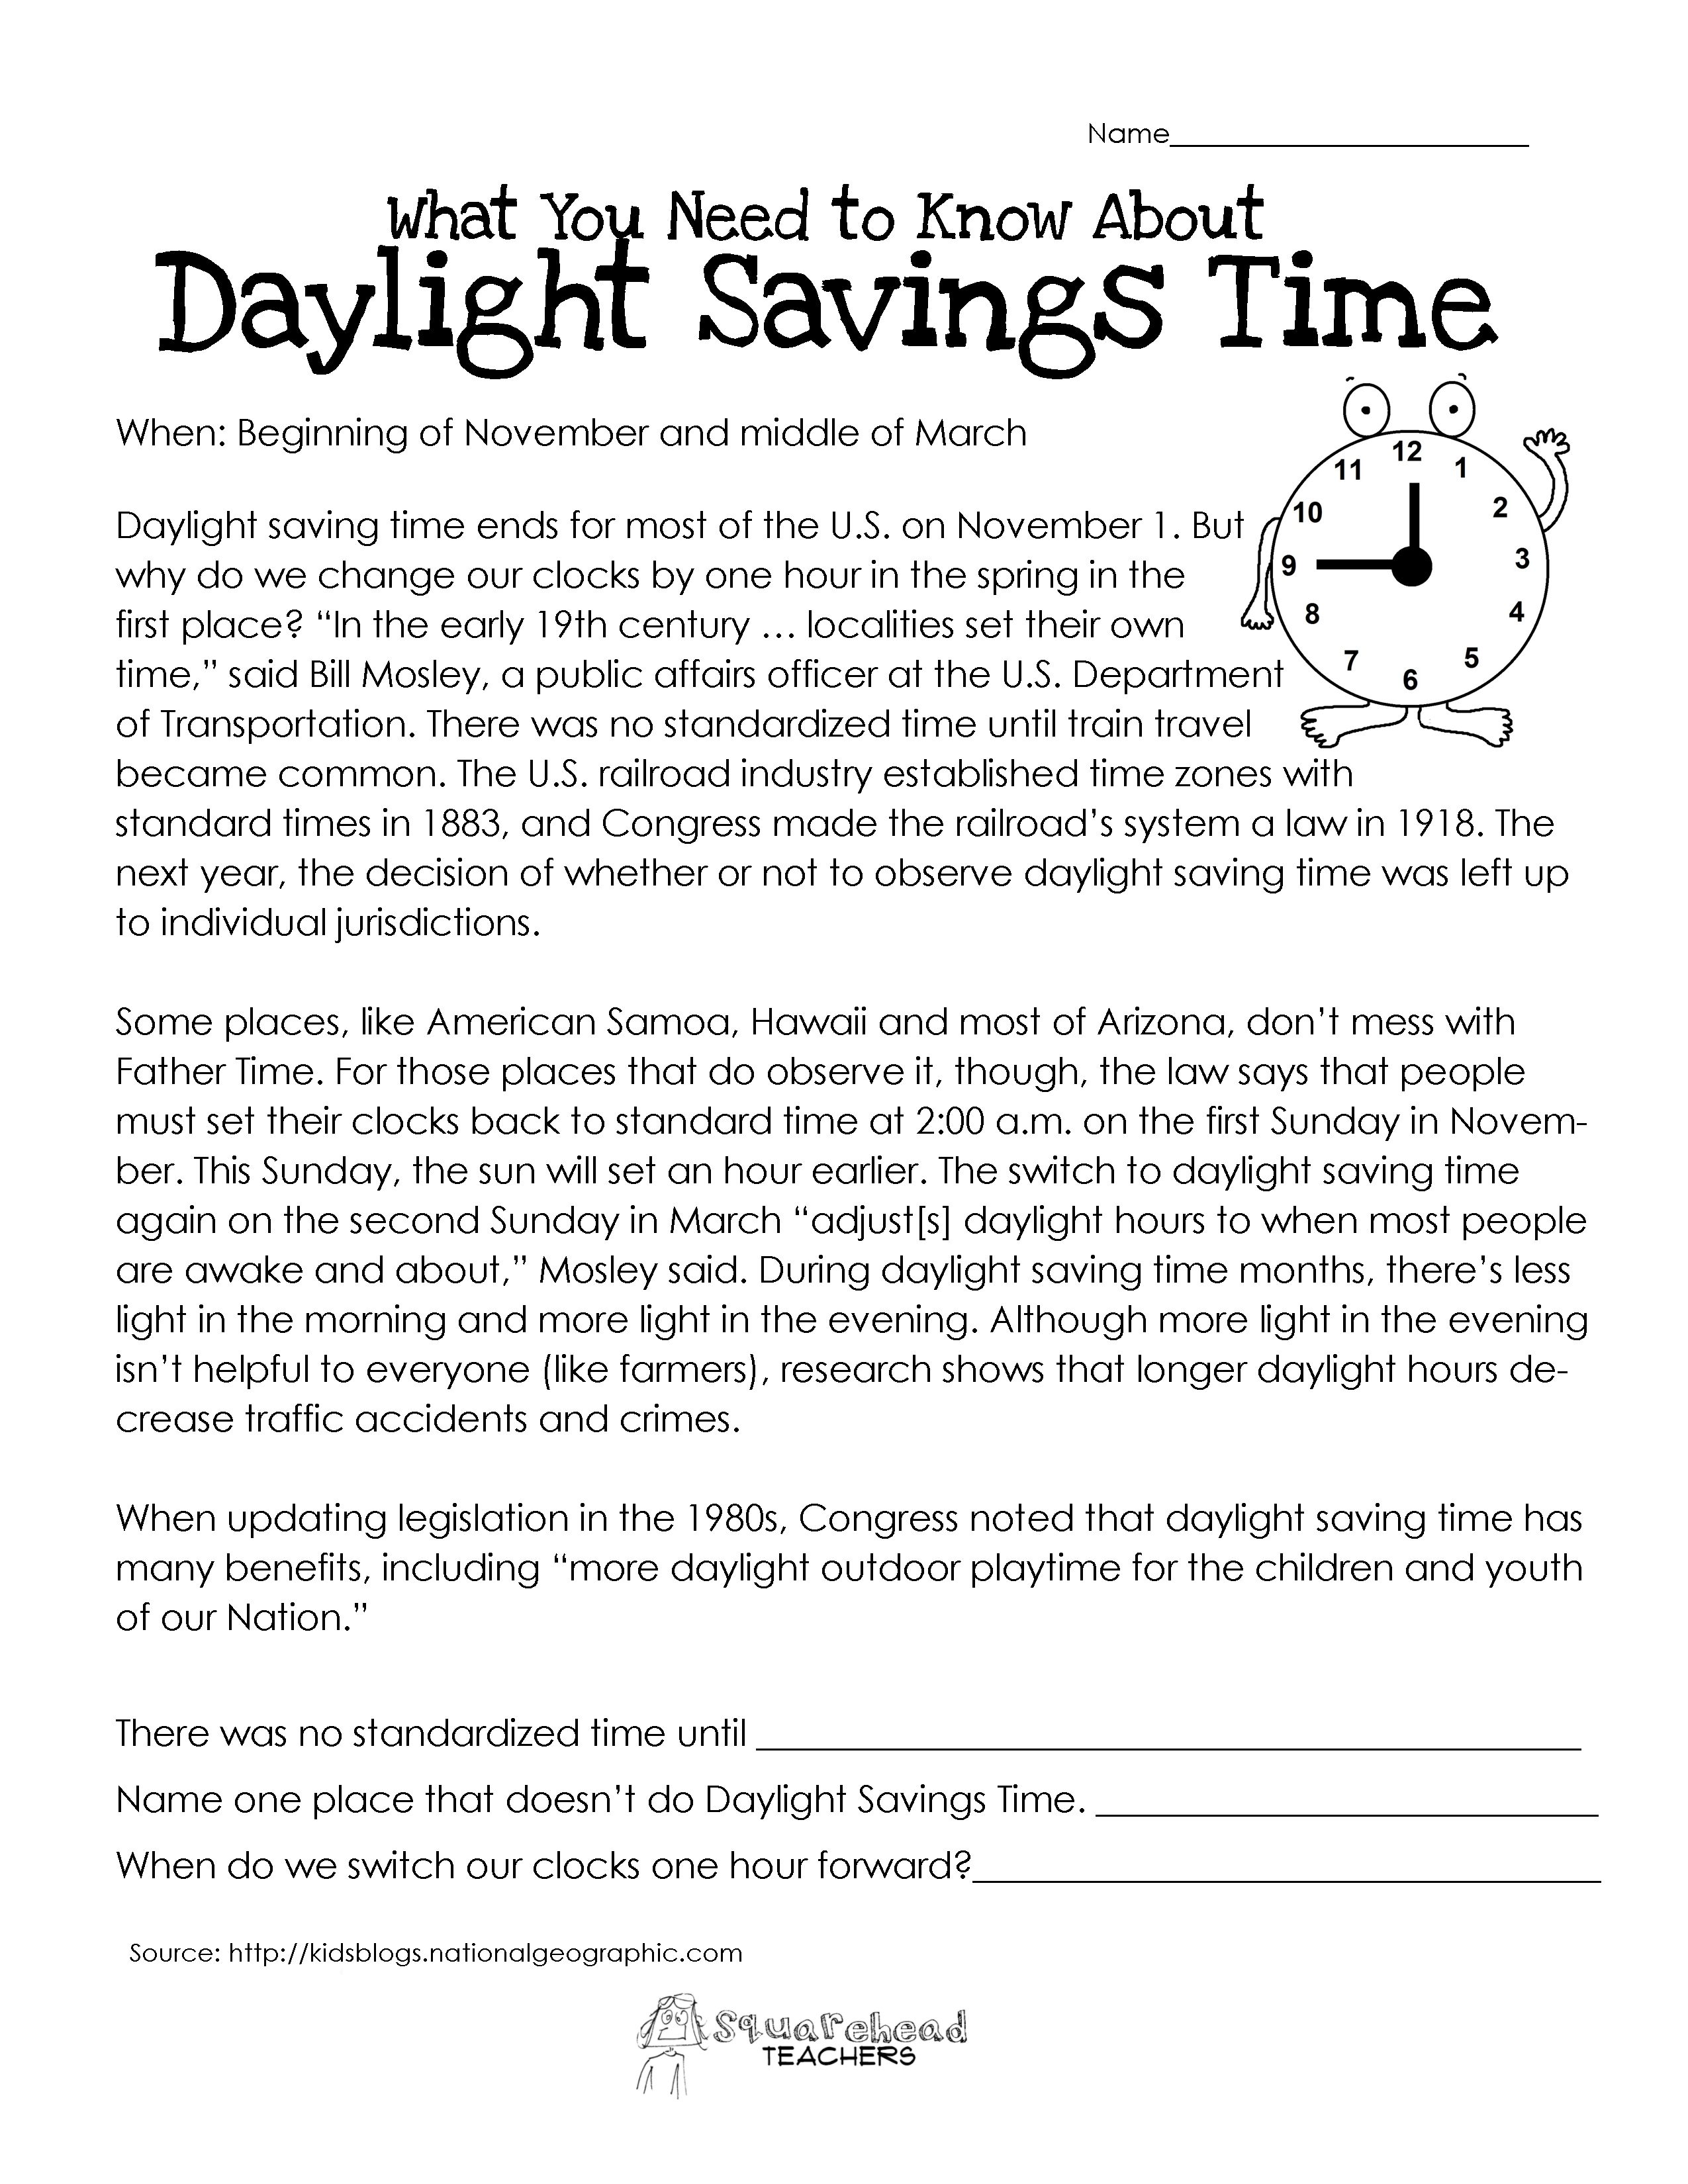 What You Need to Know About Daylight Savings – Savings Worksheet